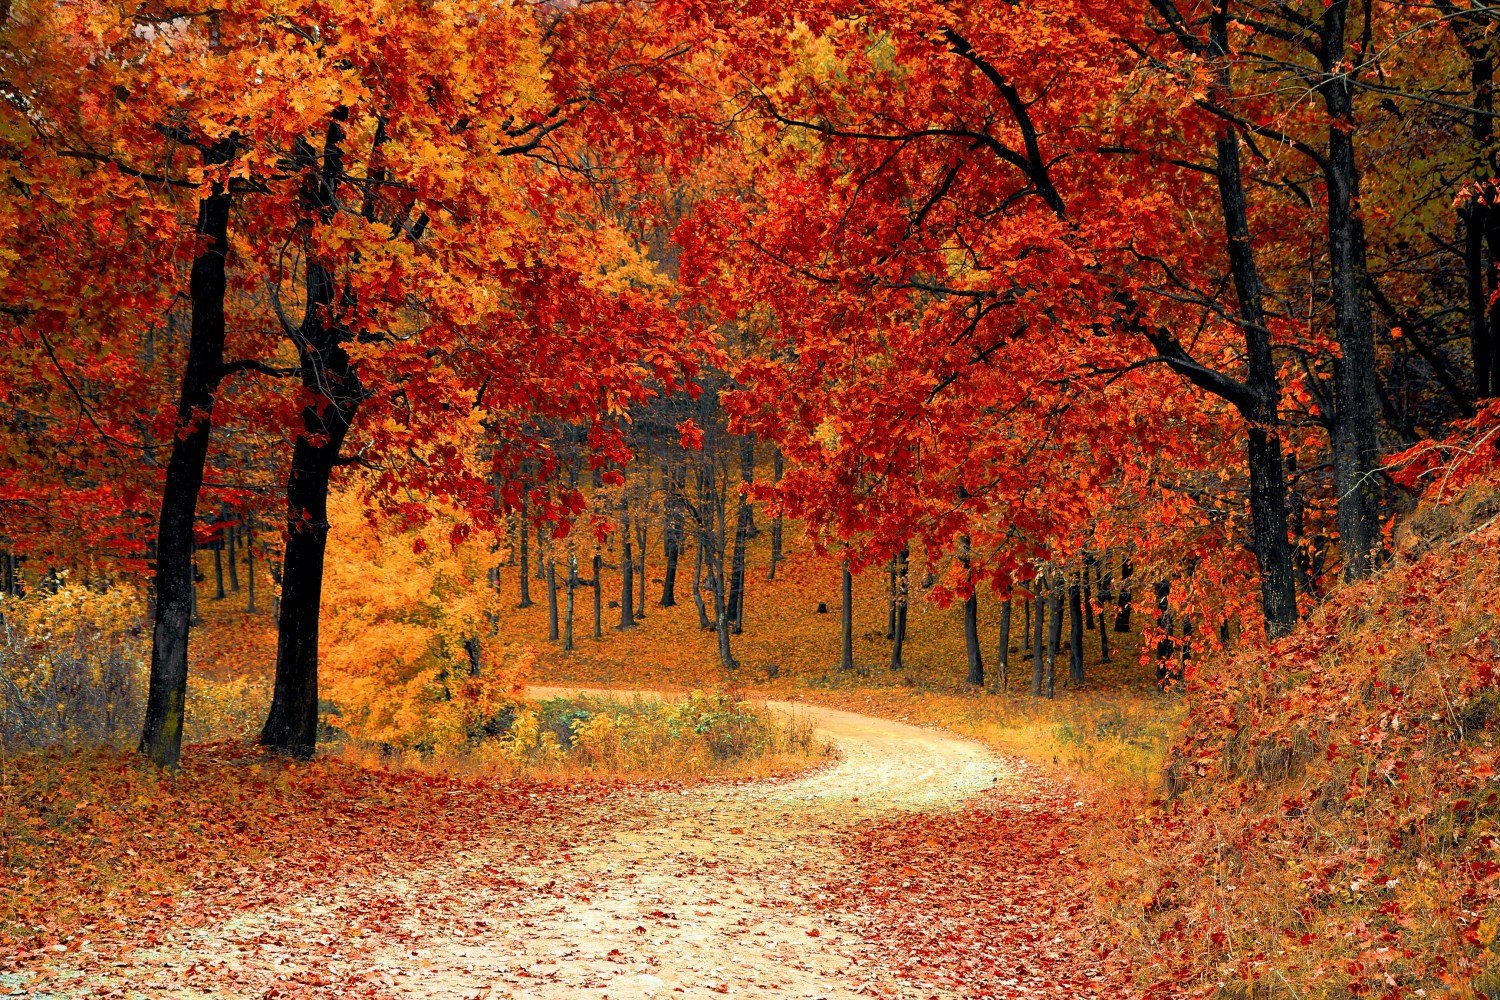 Fall Scene Wallpaper For Iphone Fall Pictures 183 Pexels 183 Free Stock Photos